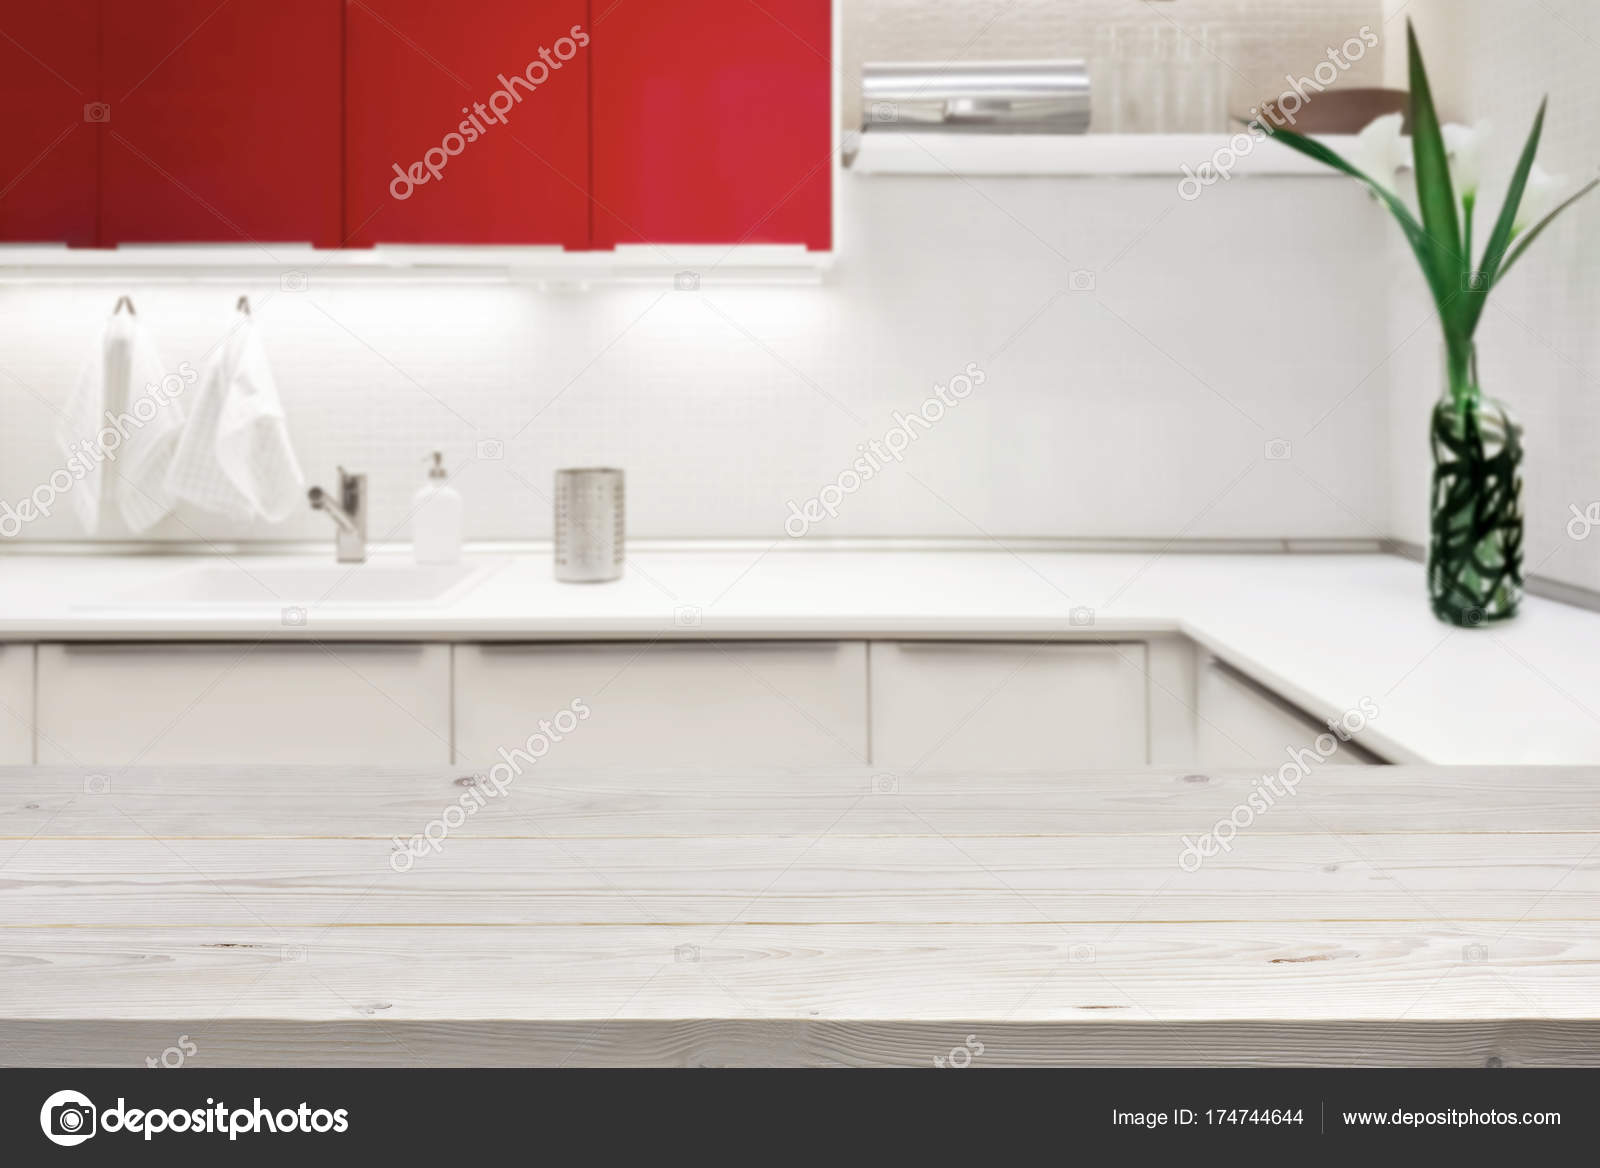 Blurred background of modern kitchen with tabletop and copy space 9